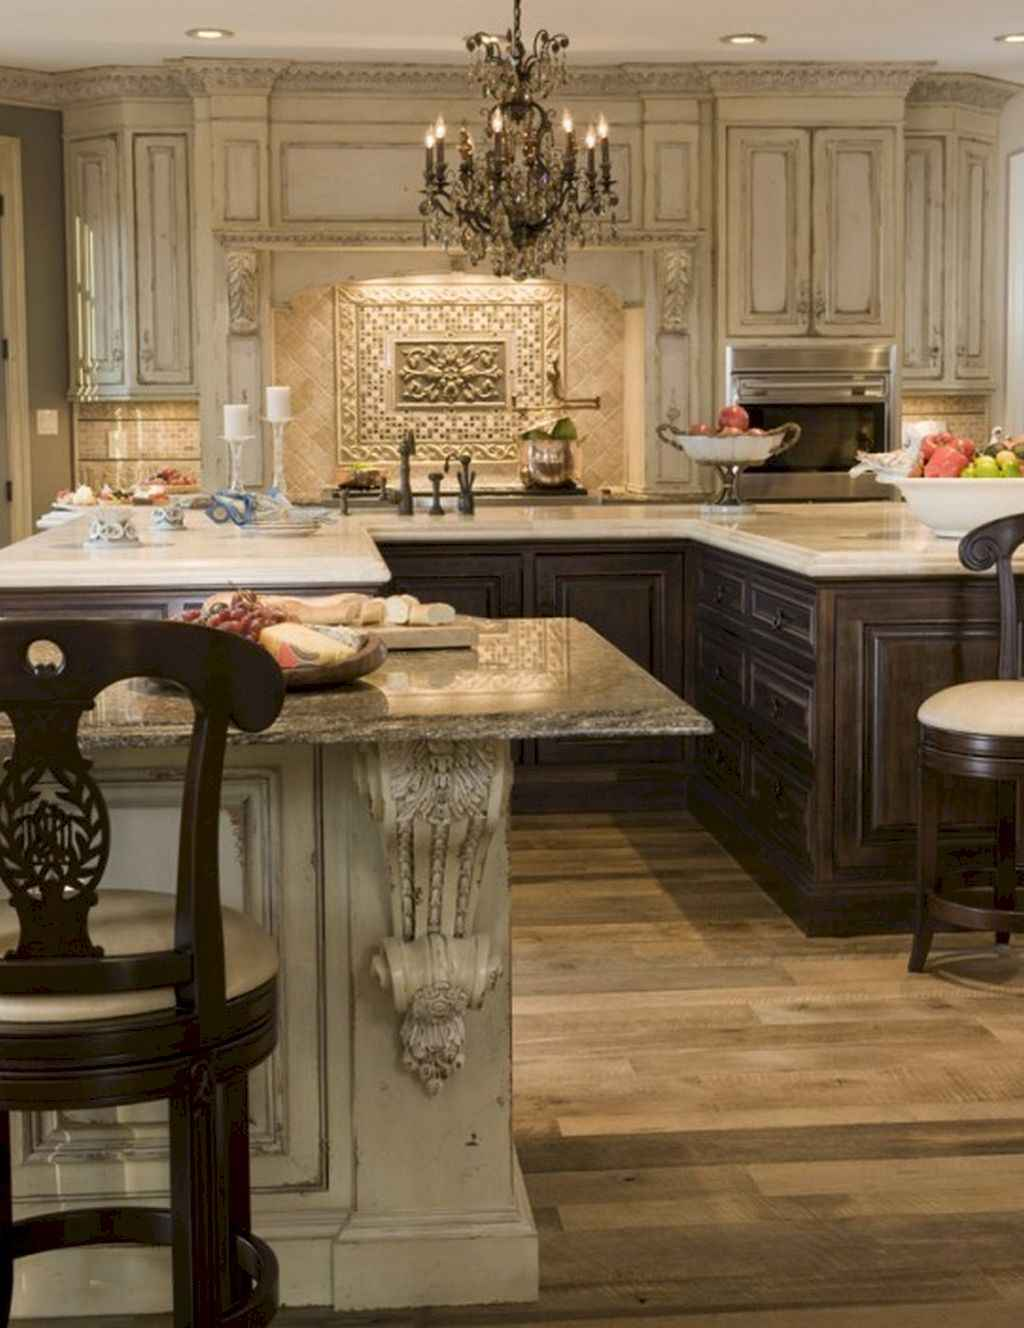 Incredible french country kitchen design ideas (26)